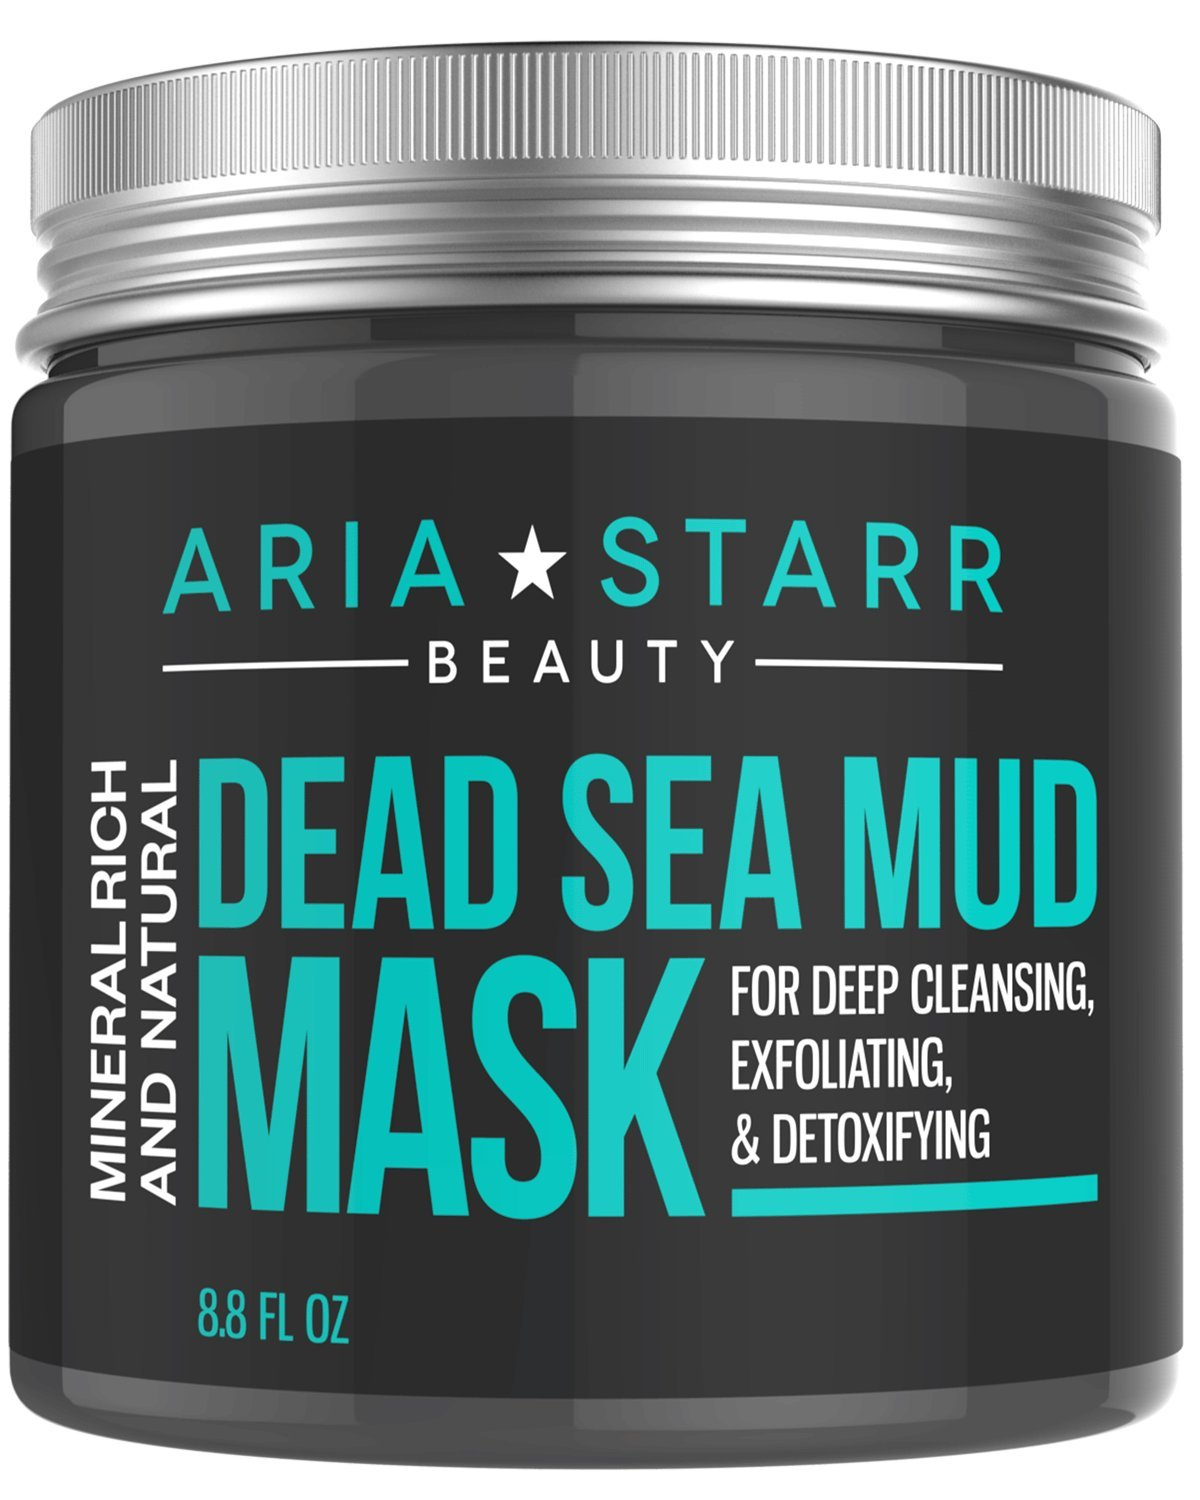 Aria Starr Dead Sea Mud Mask For Face, Acne, Oily Skin & Blackheads - Best Facial Pore Minimizer, Reducer & Pores Cleanser Treatment - Natural For Younger Looking Skin by Aria Starr Beauty